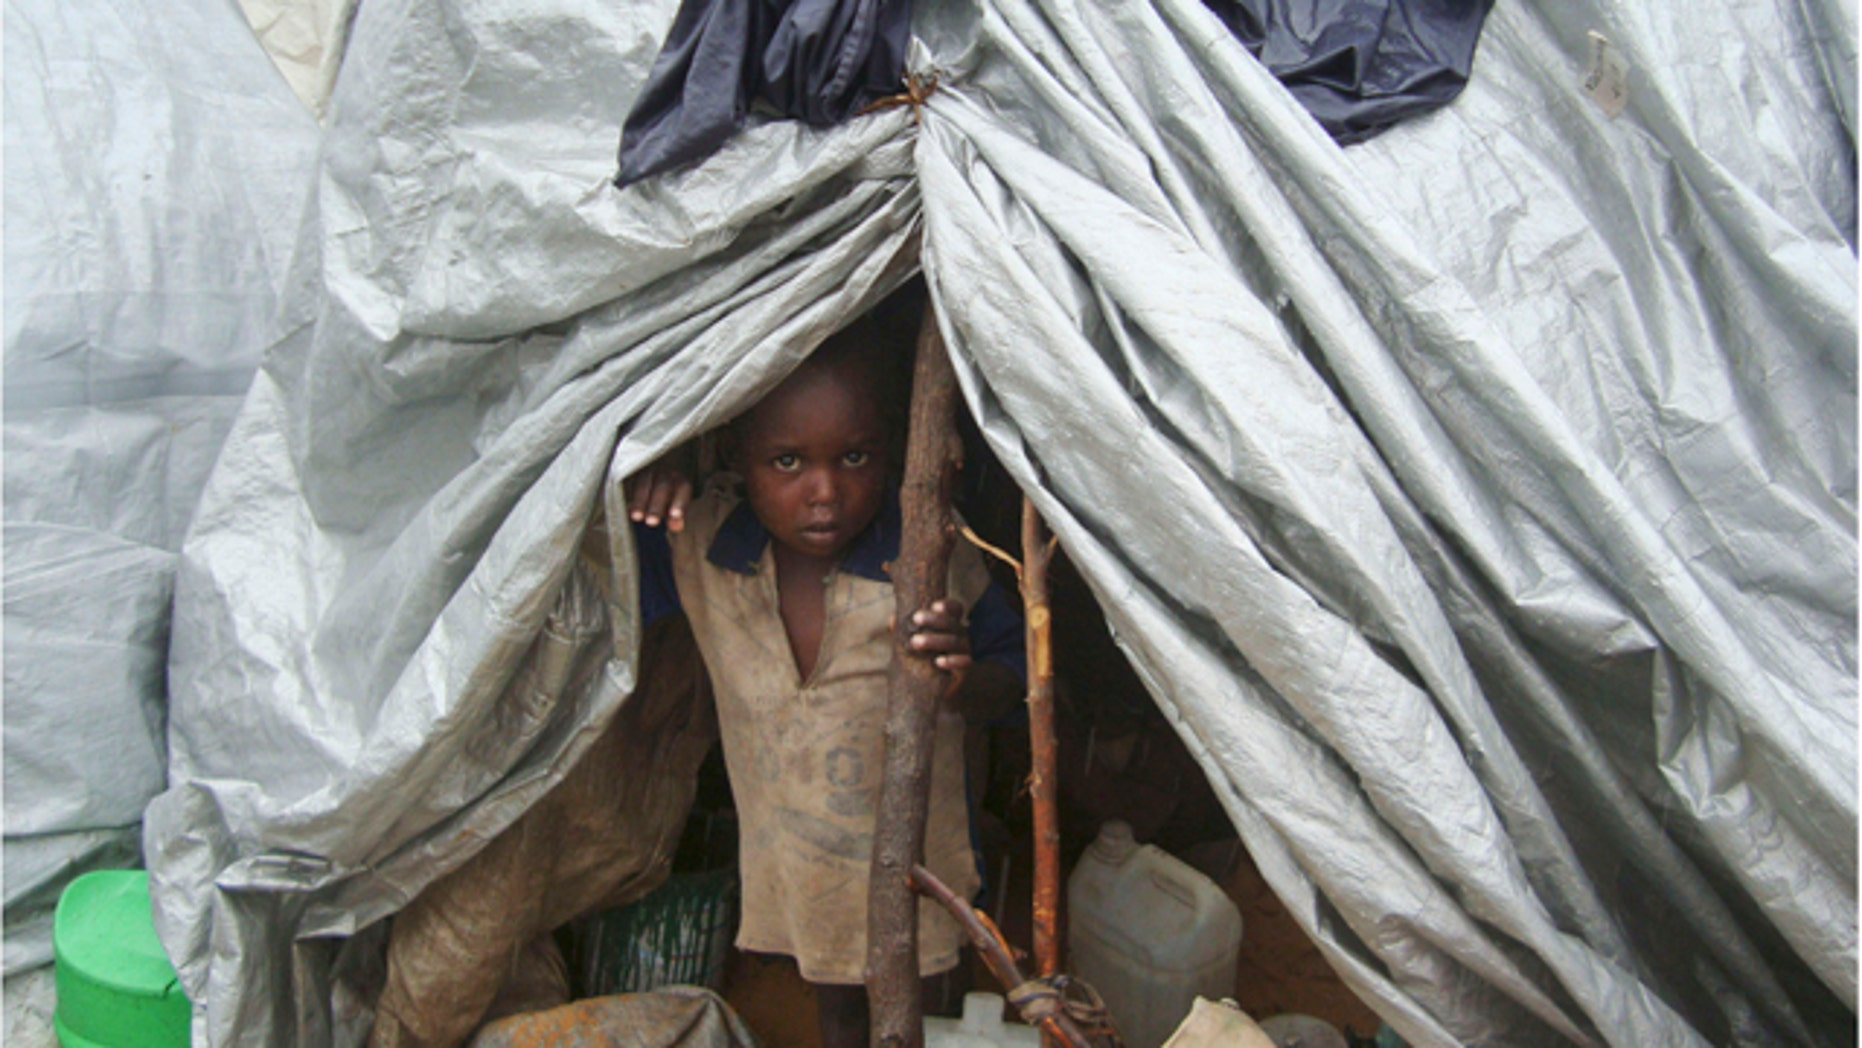 July 31: A young boy from southern Somalia takes cover in a makeshift shelter in Mogadishu.